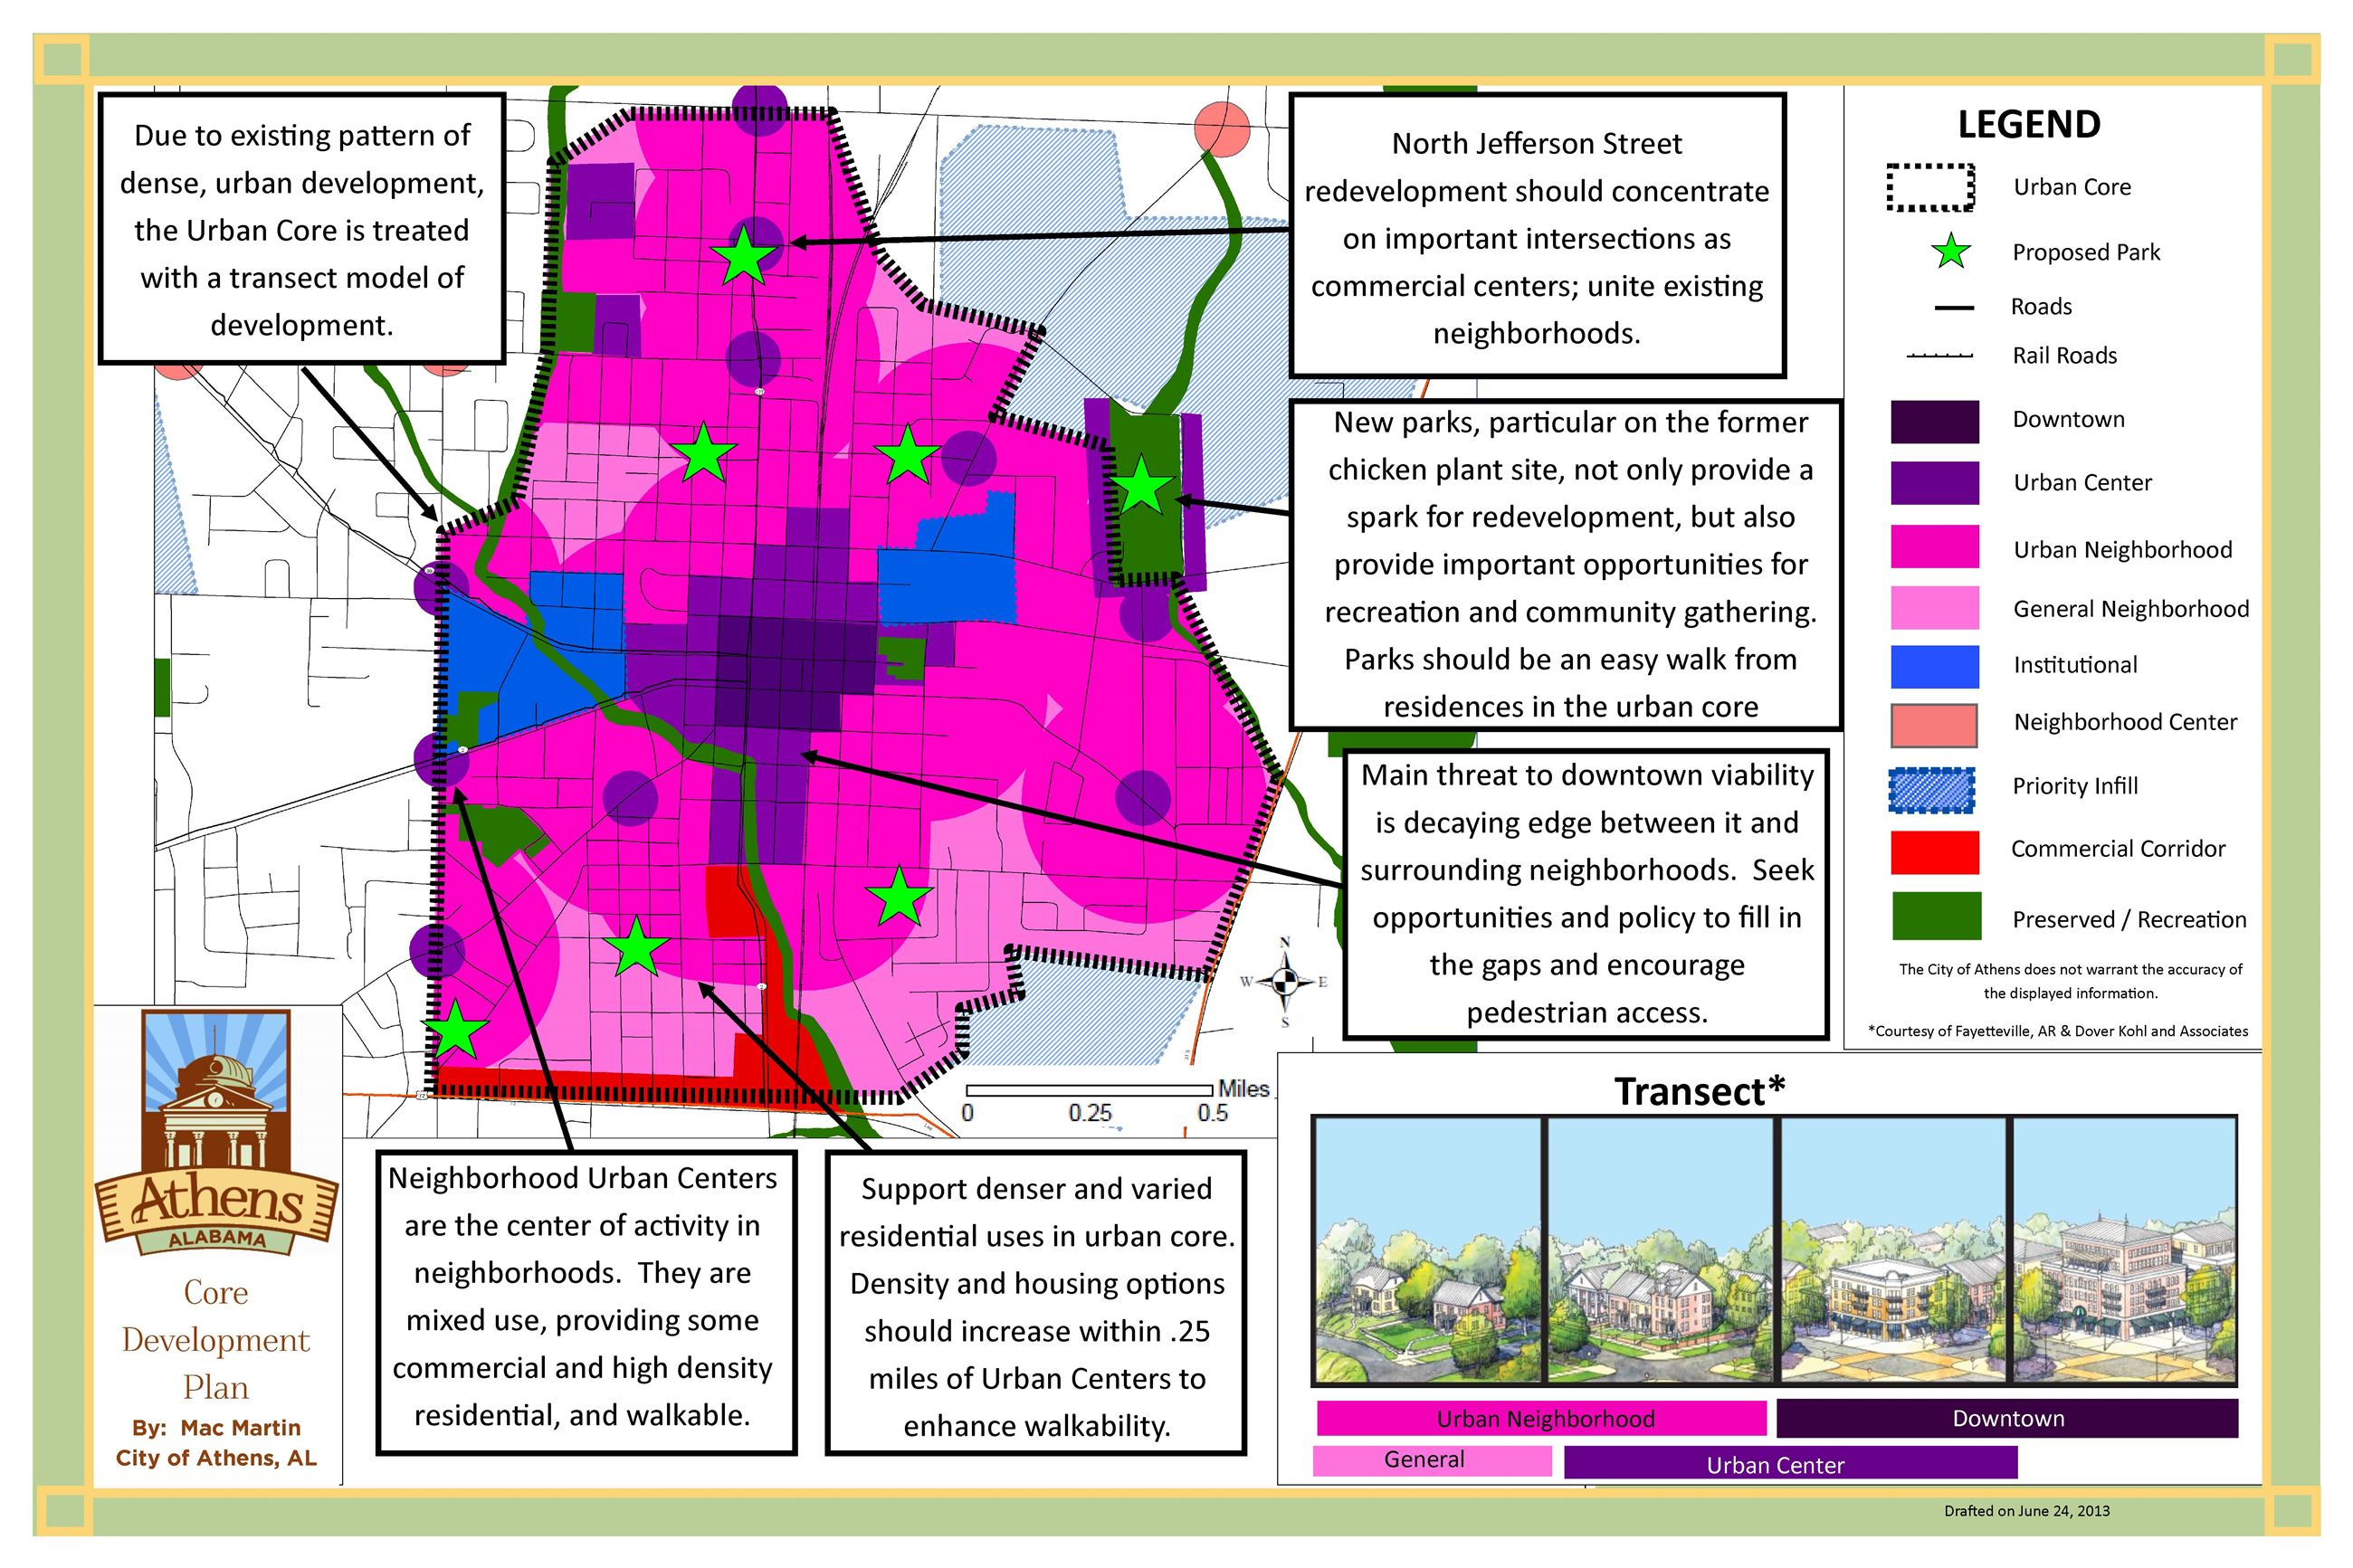 Strategic Development and Land Use Plan 4 map